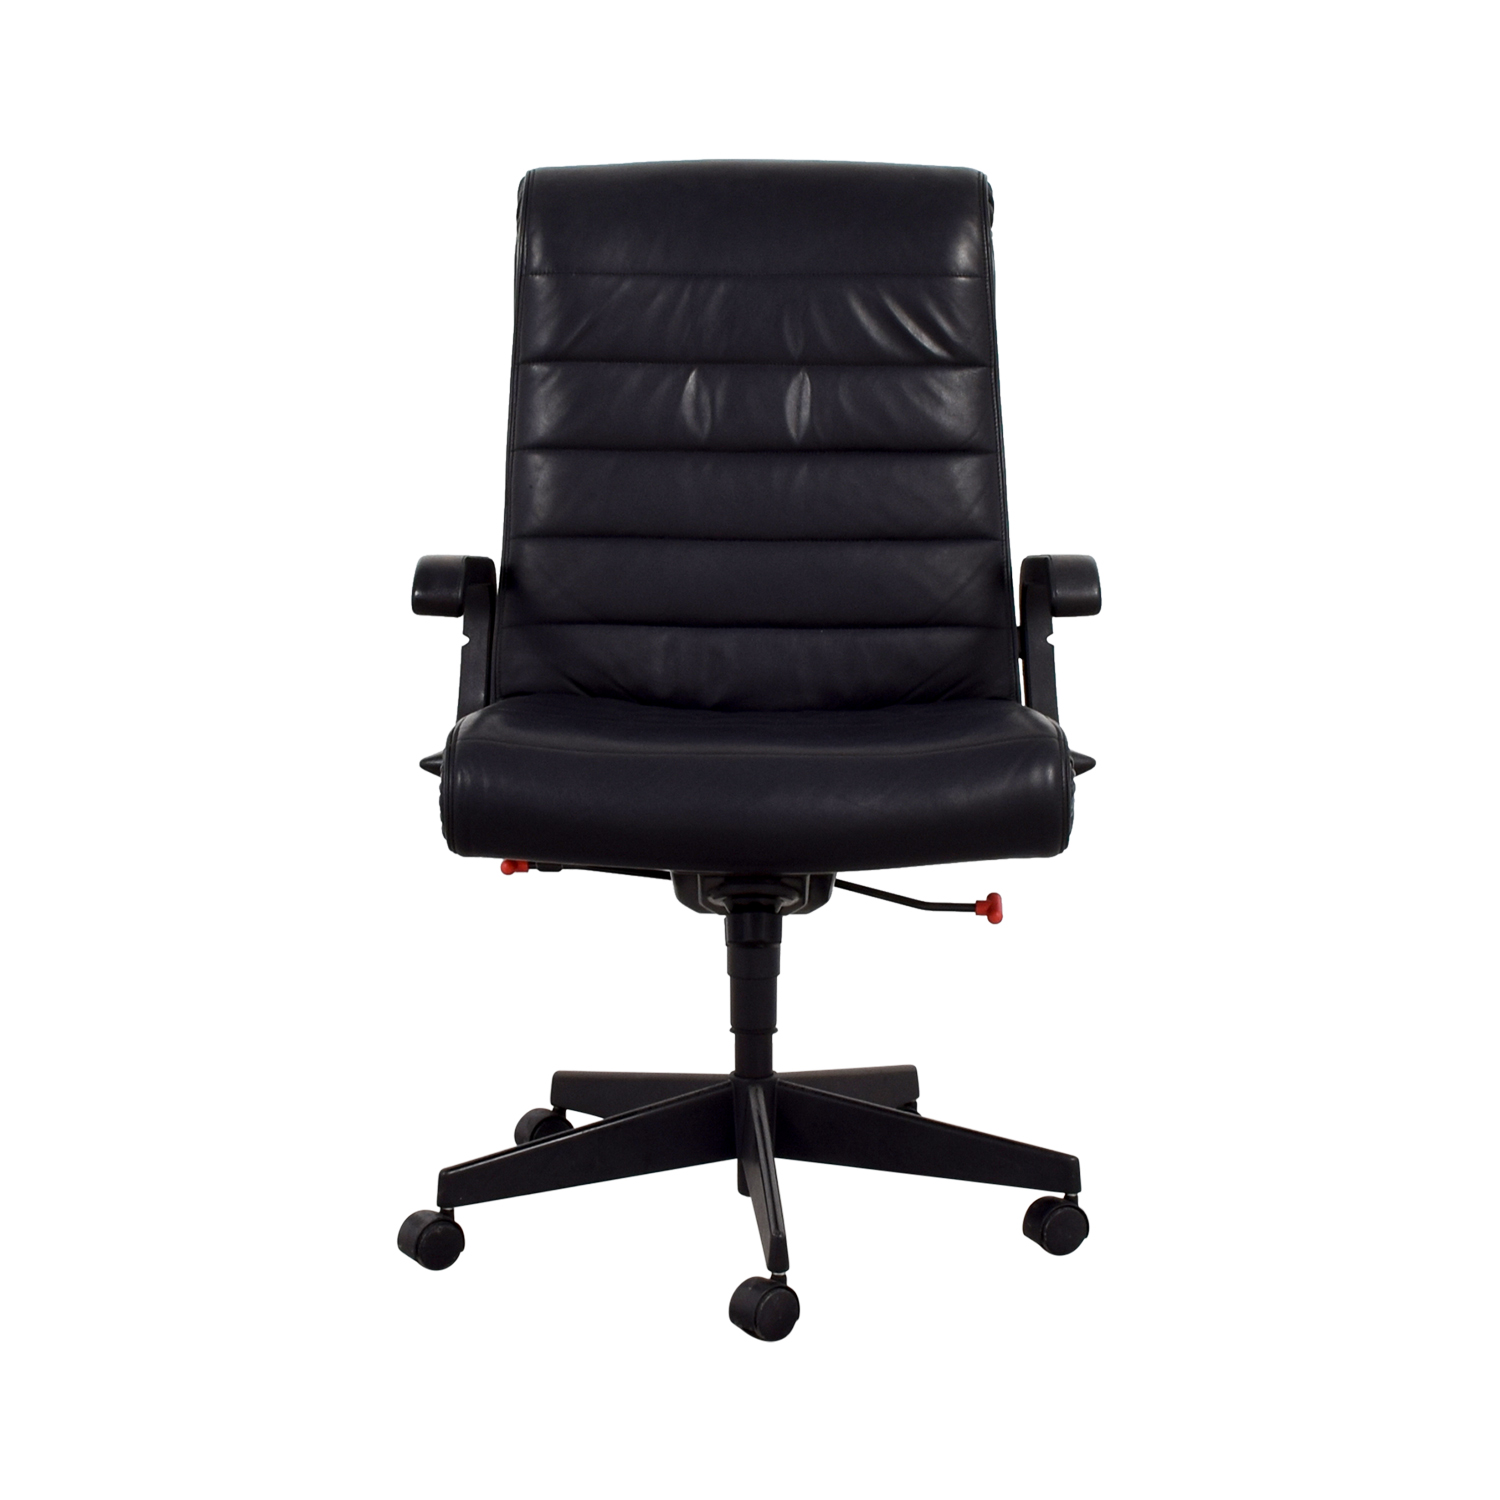 53% off - black leather office chair / chairs